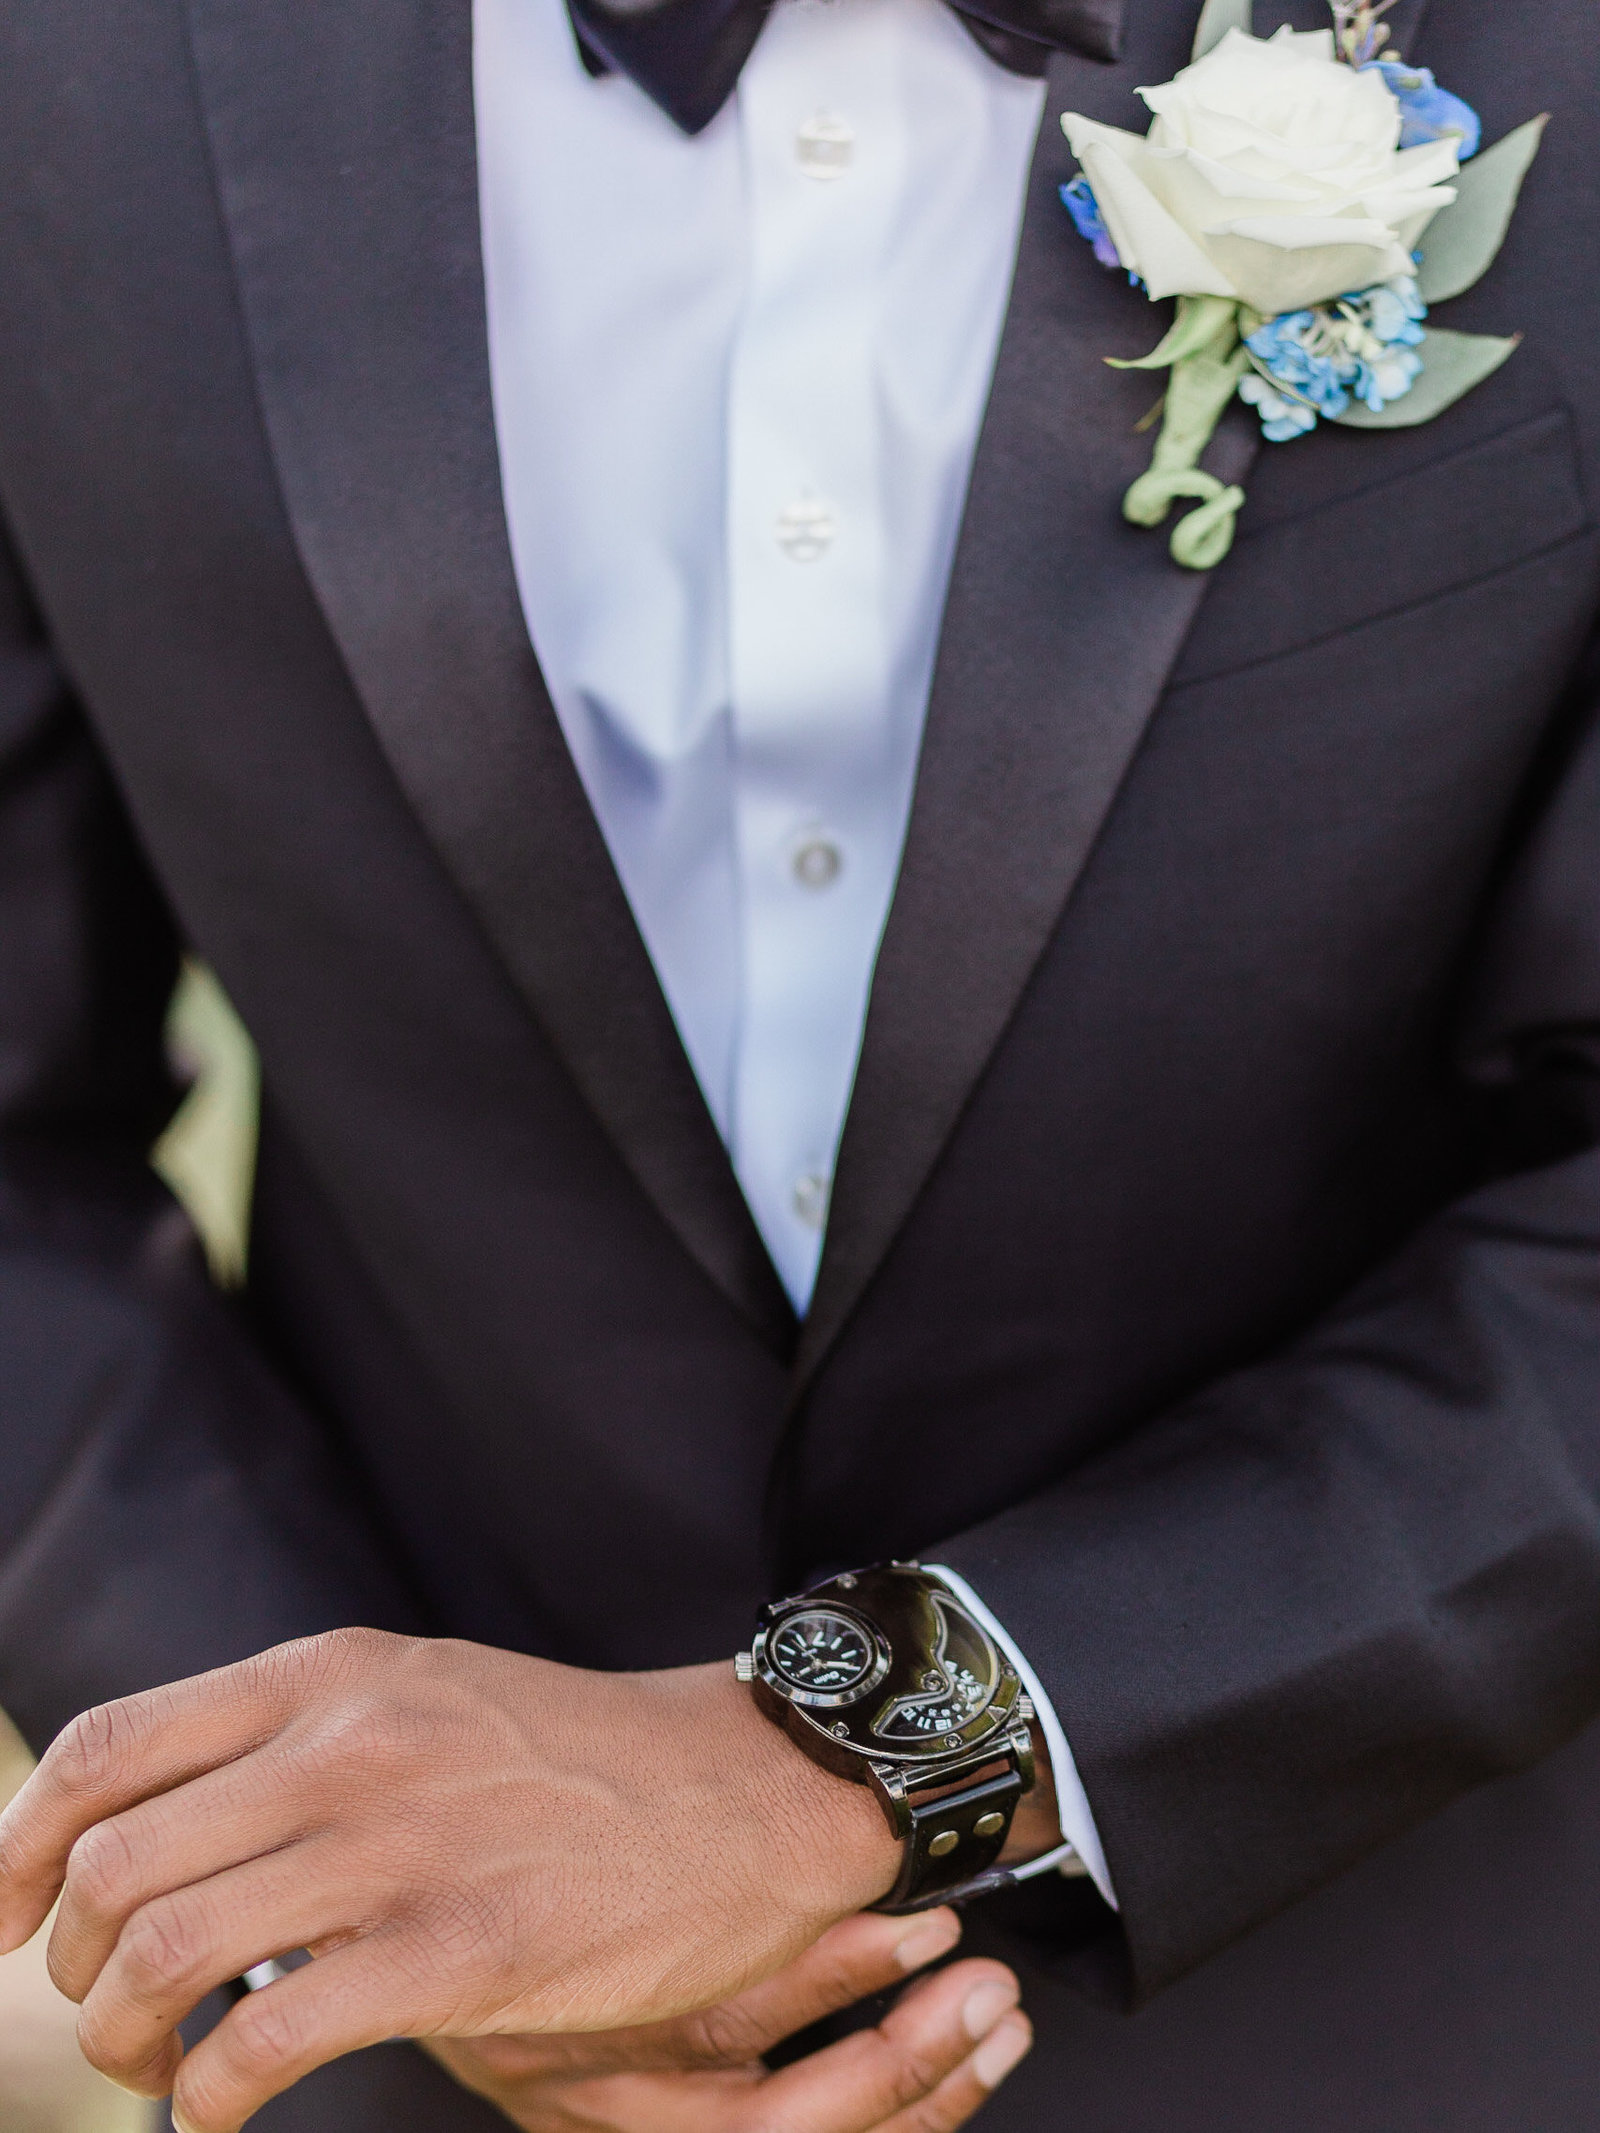 Close up of African American groom in a black suit with white rose boutonniere, adjusting his watch